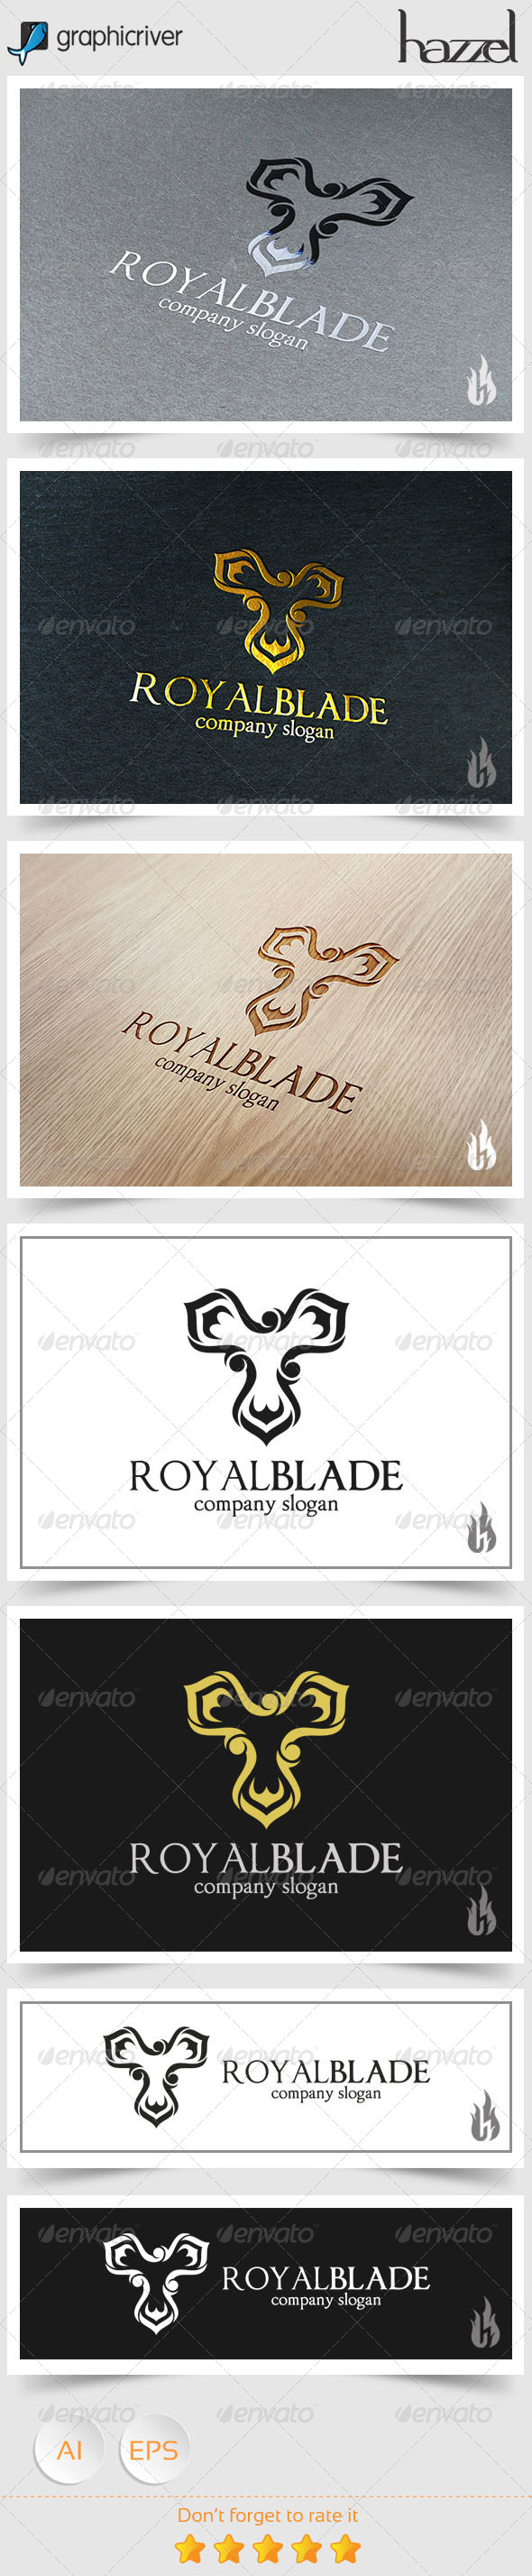 GraphicRiver Royal Blade Logo 8746731